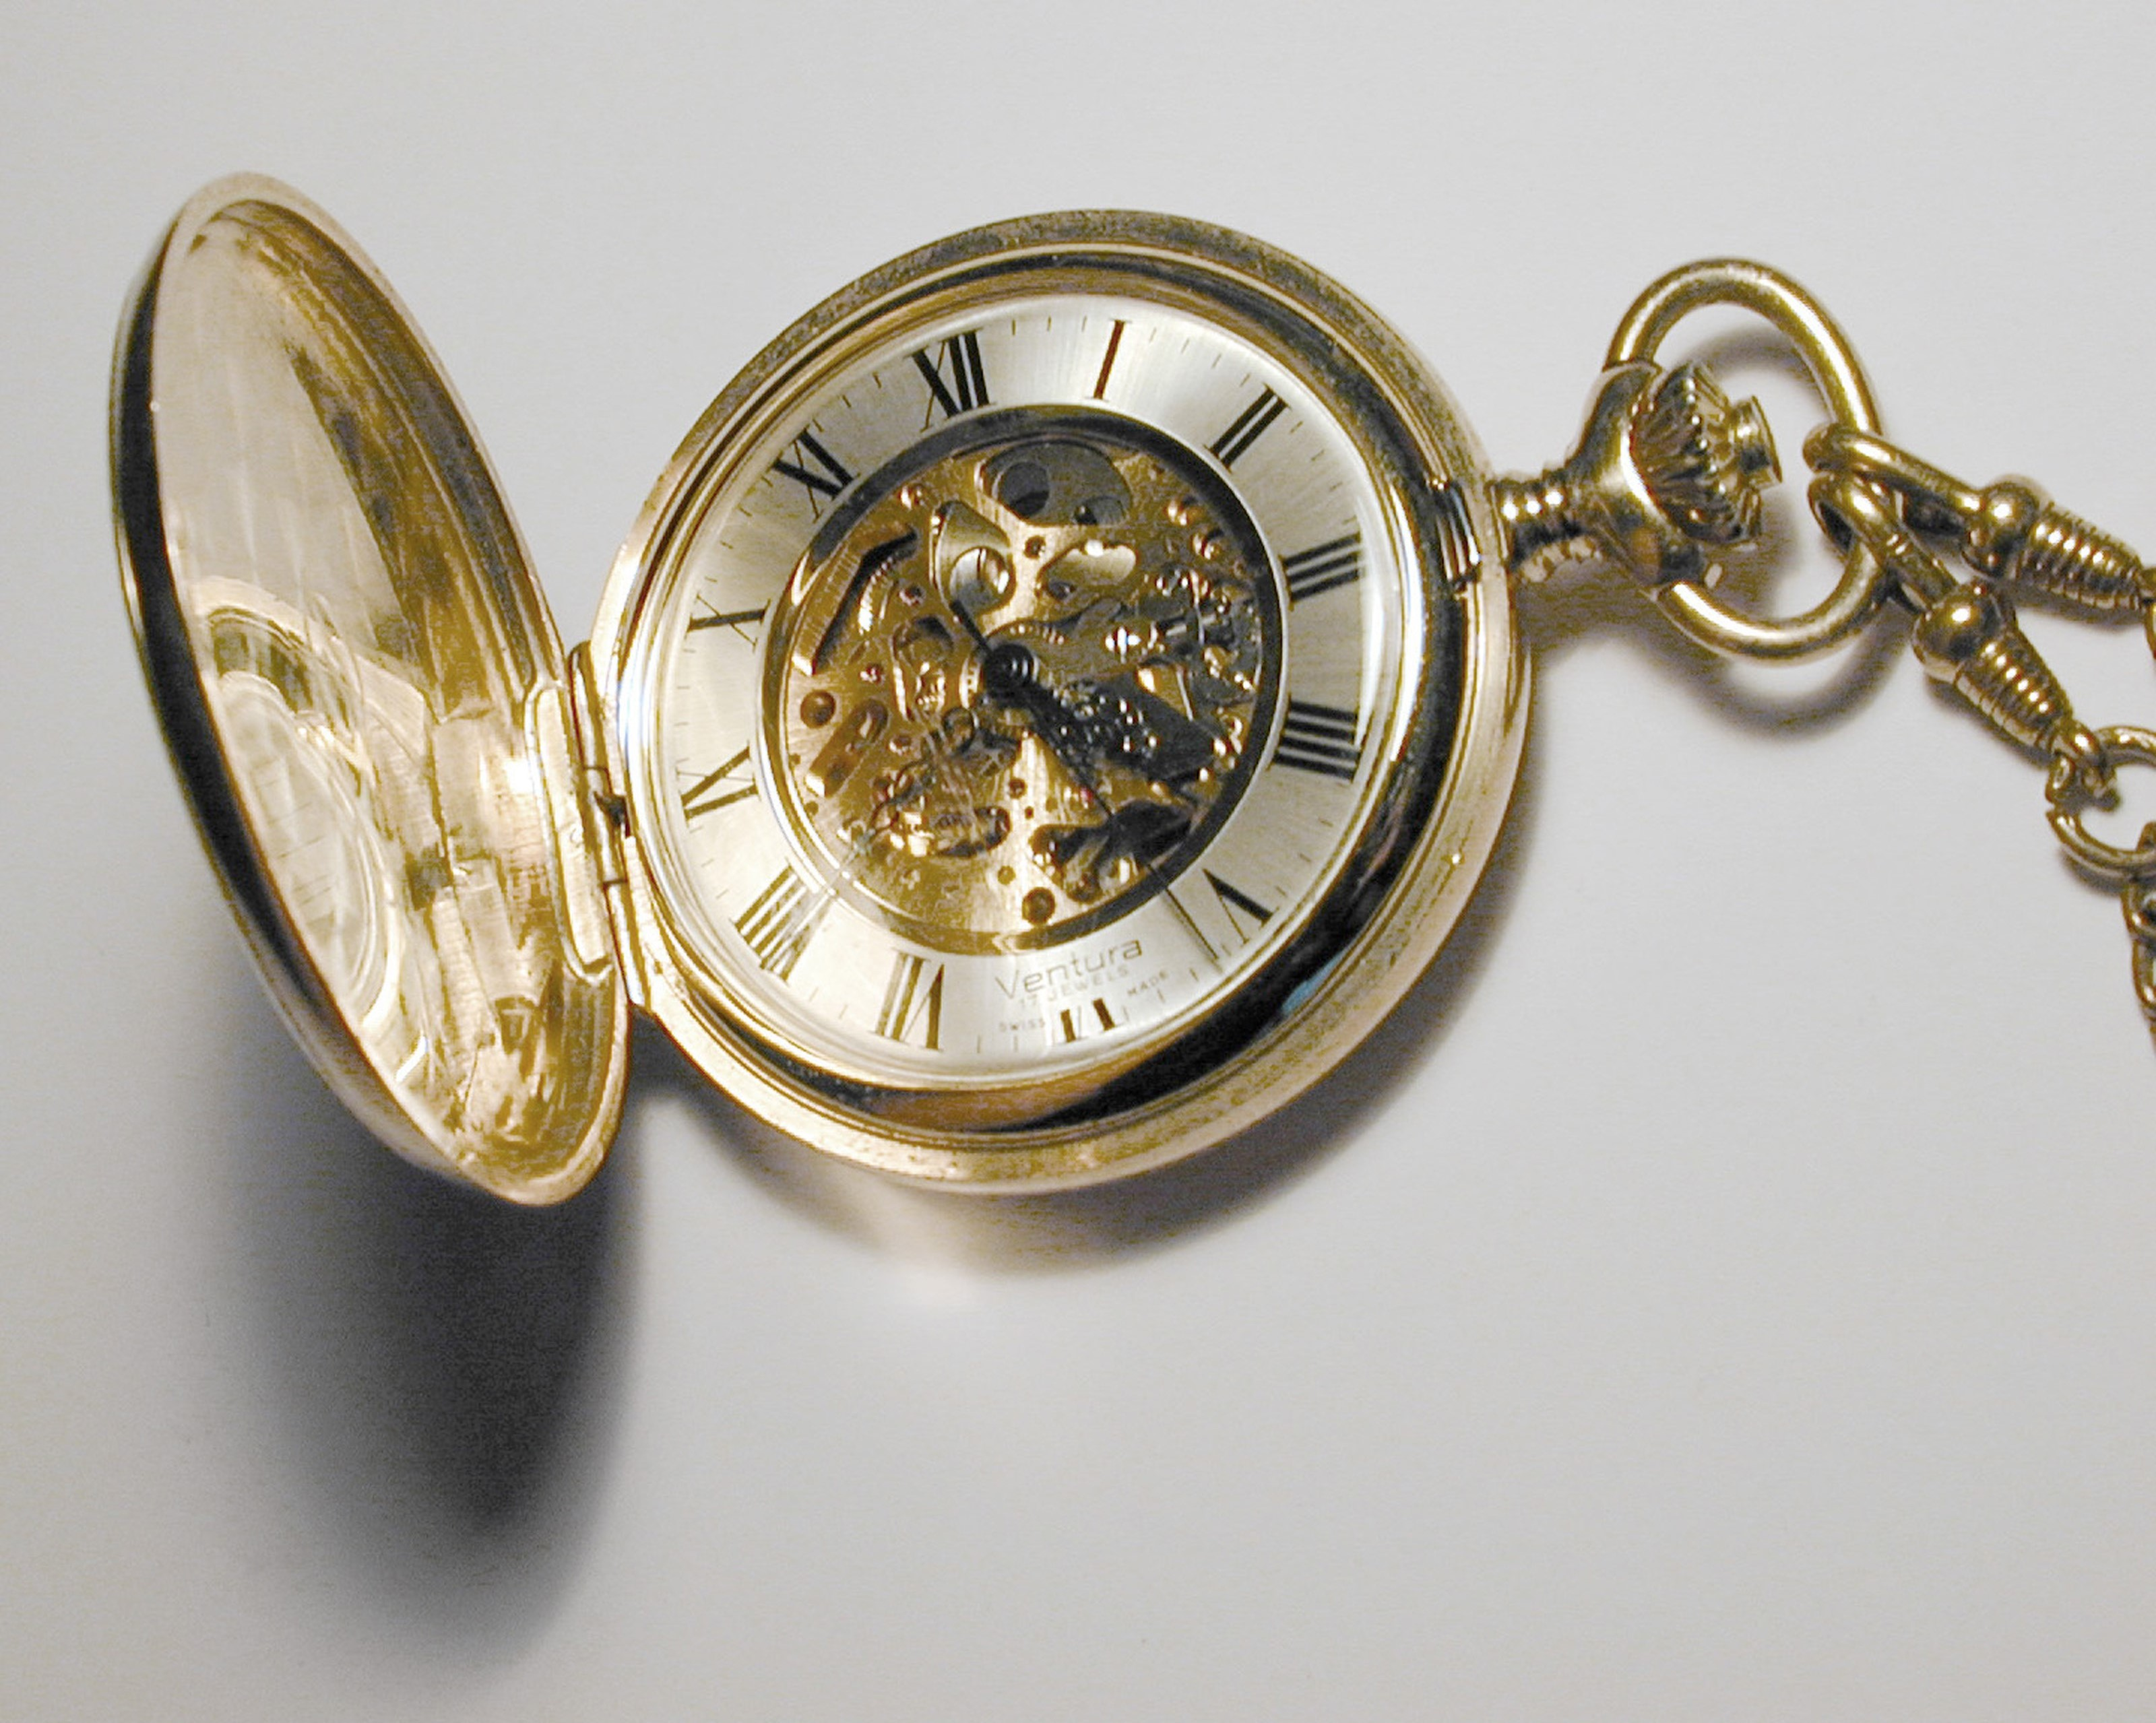 3200x2558 Free Image Of Open Pocket Watch